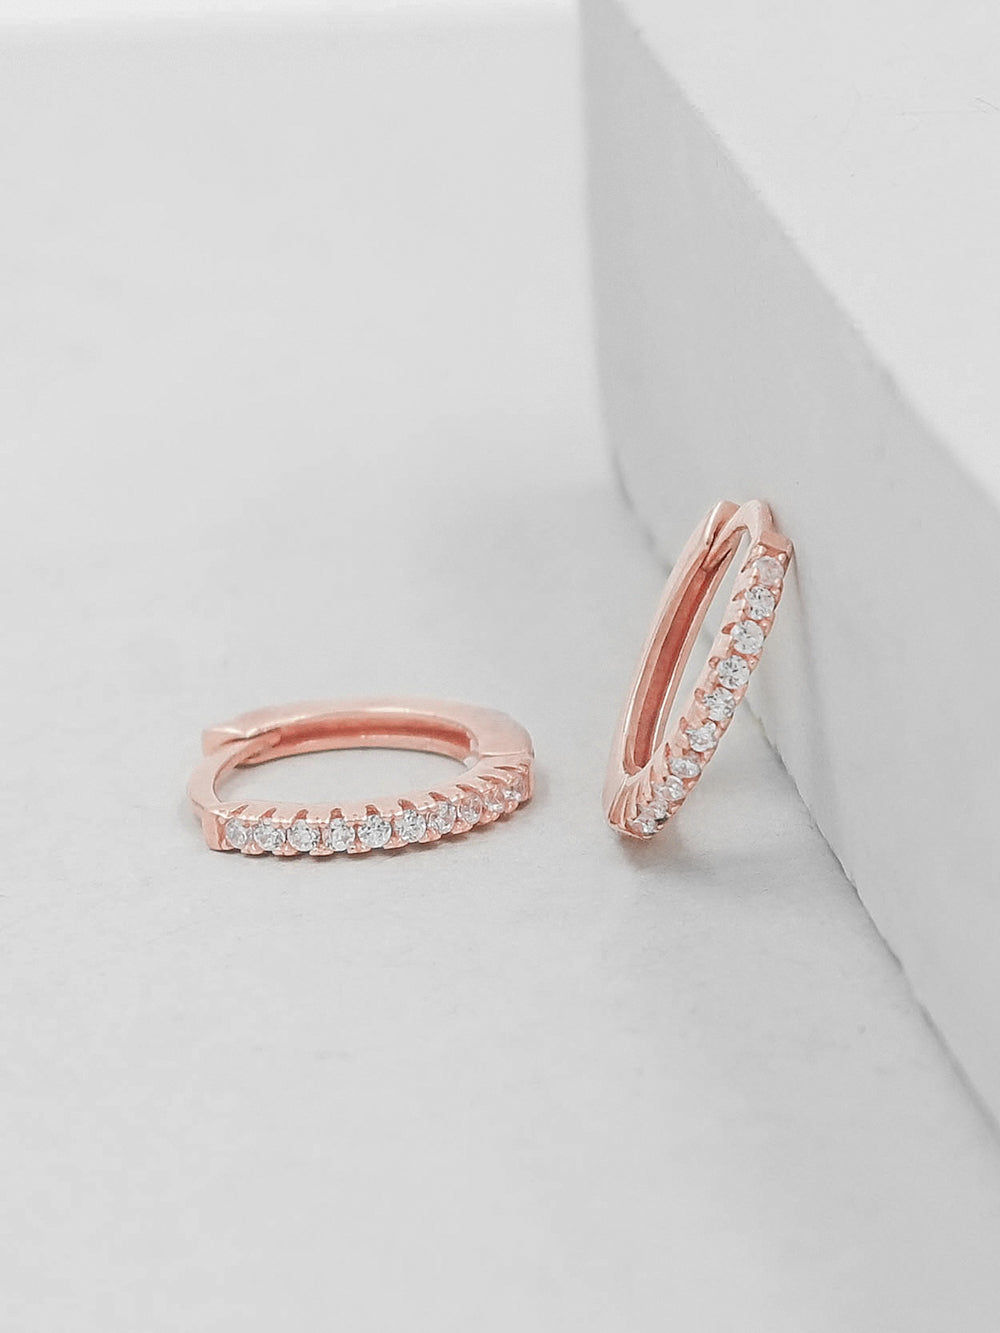 Rose Gold Plated Super Dainty Hoop Huggie Earrings with Tiny Round Cubic Zirconia by The Faint Hearted Jewelry